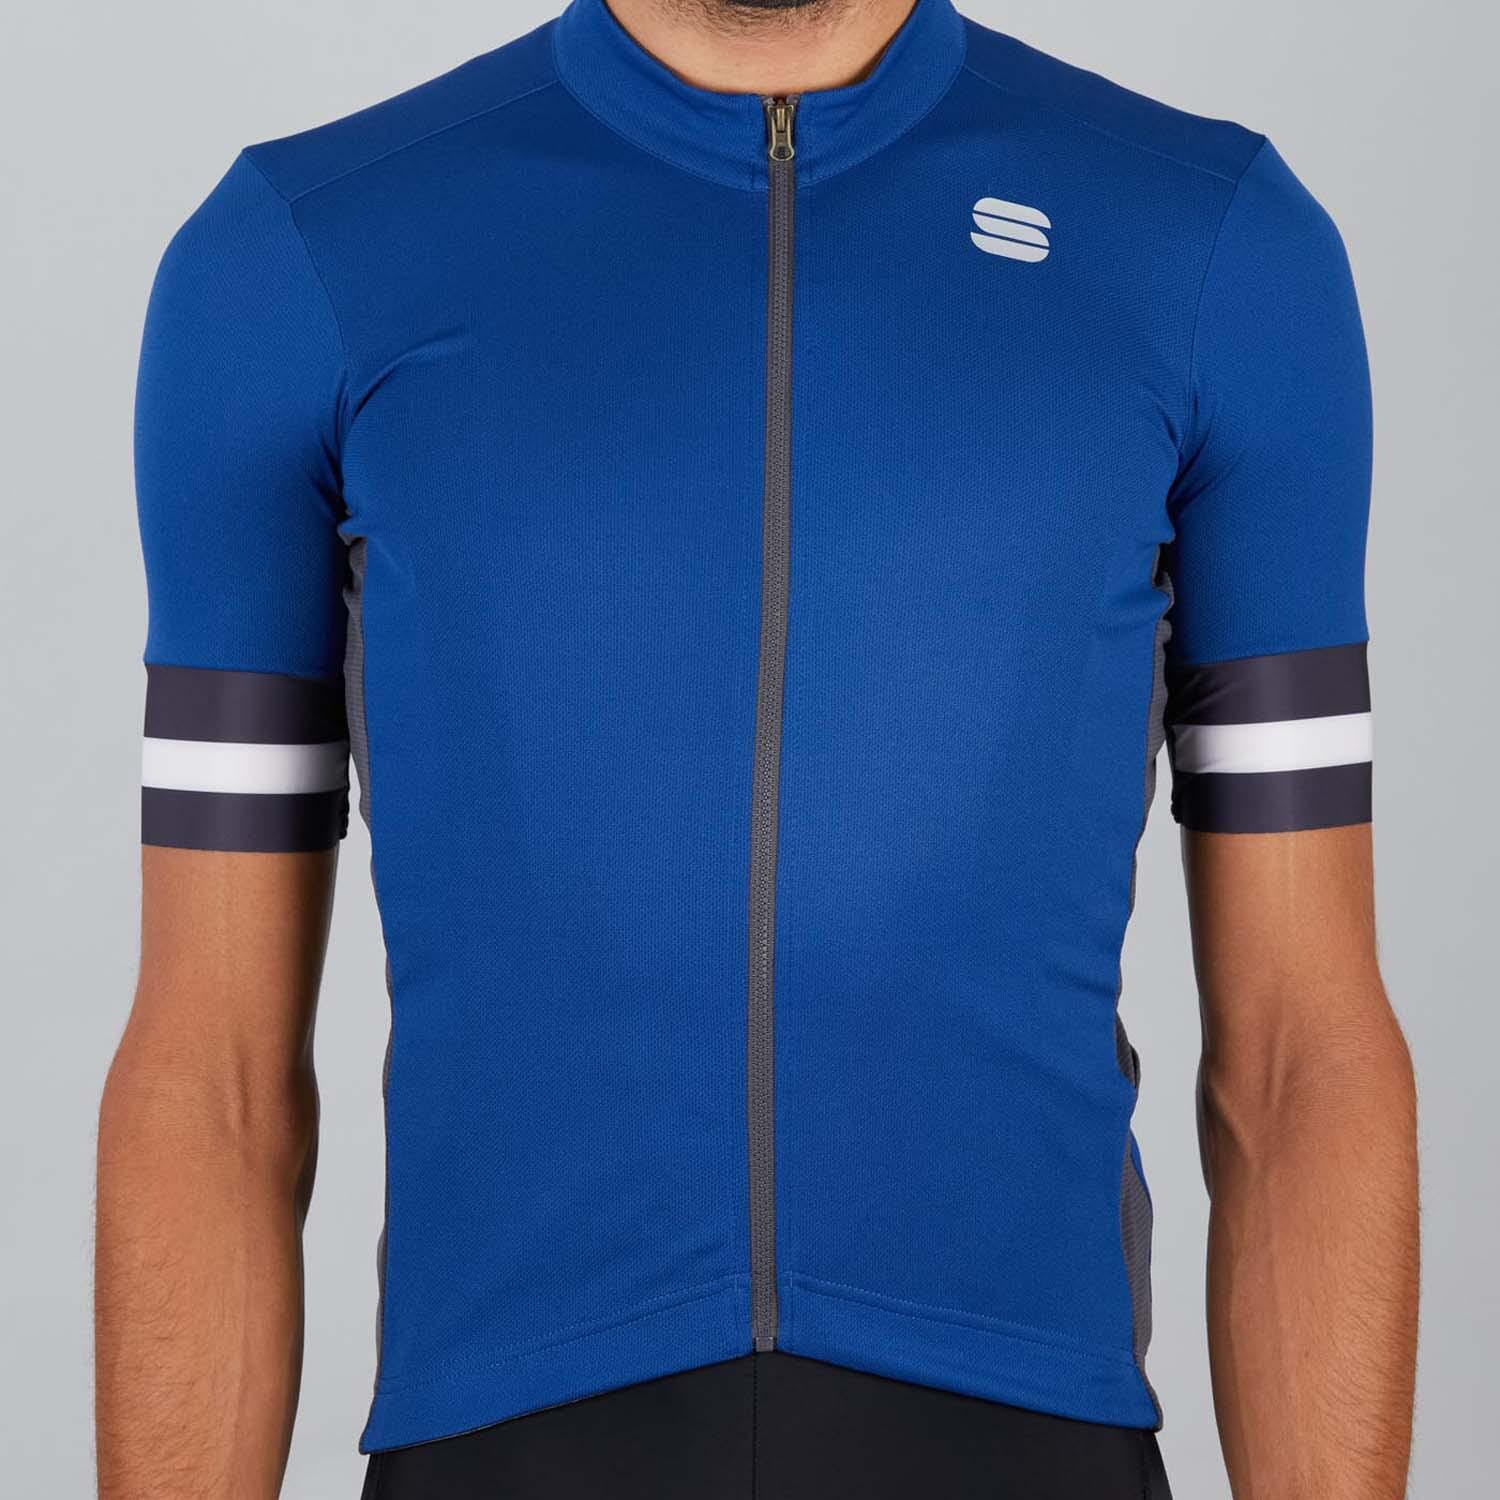 Sportful-Sportful Kite Jersey-Blue Ceramic-XS-SF200155841-saddleback-elite-performance-cycling